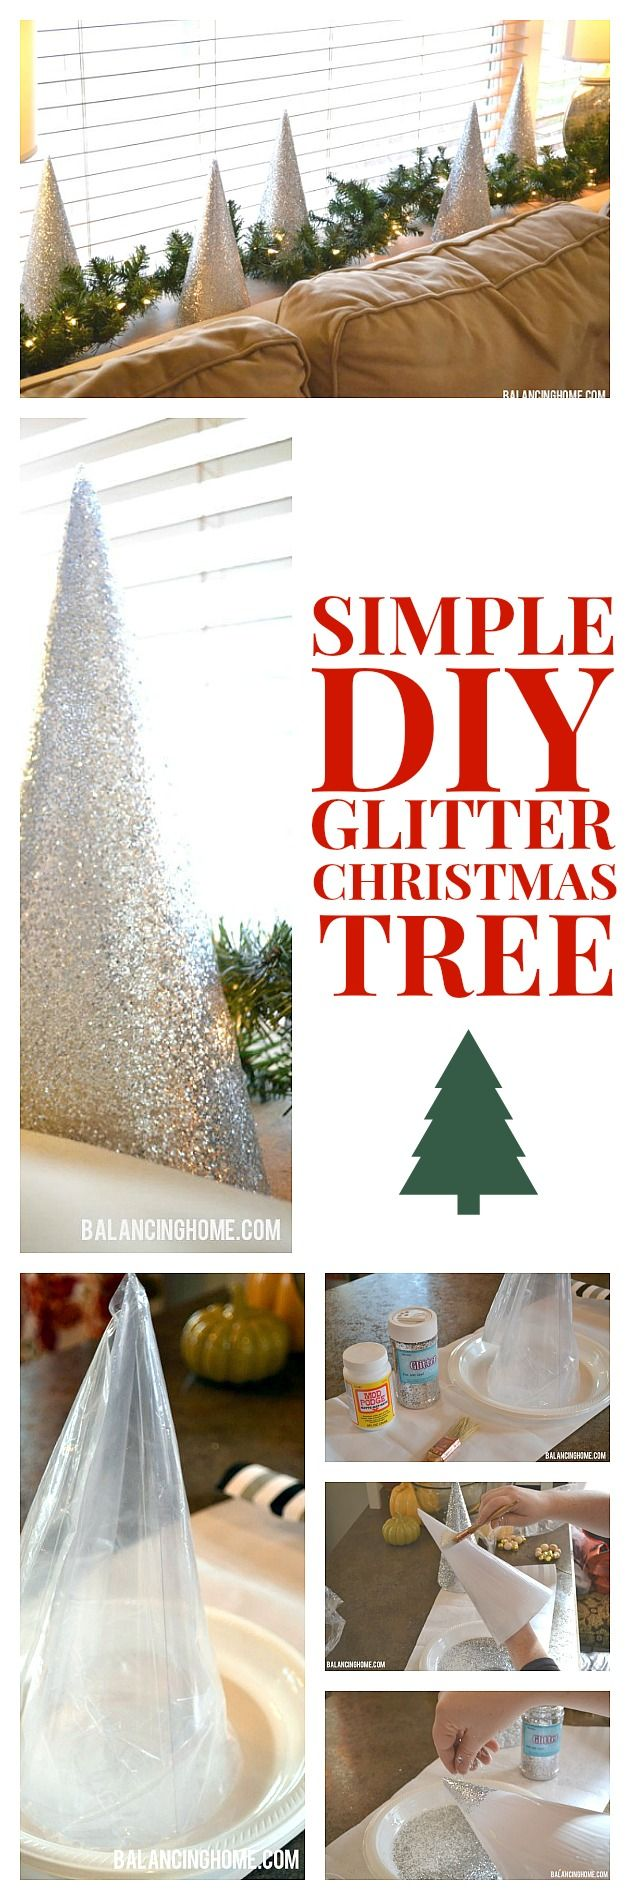 Diy Glitter Christmas Tree Balancing Home Diy Christmas Tree Christmas Decor Diy Christmas Decorations